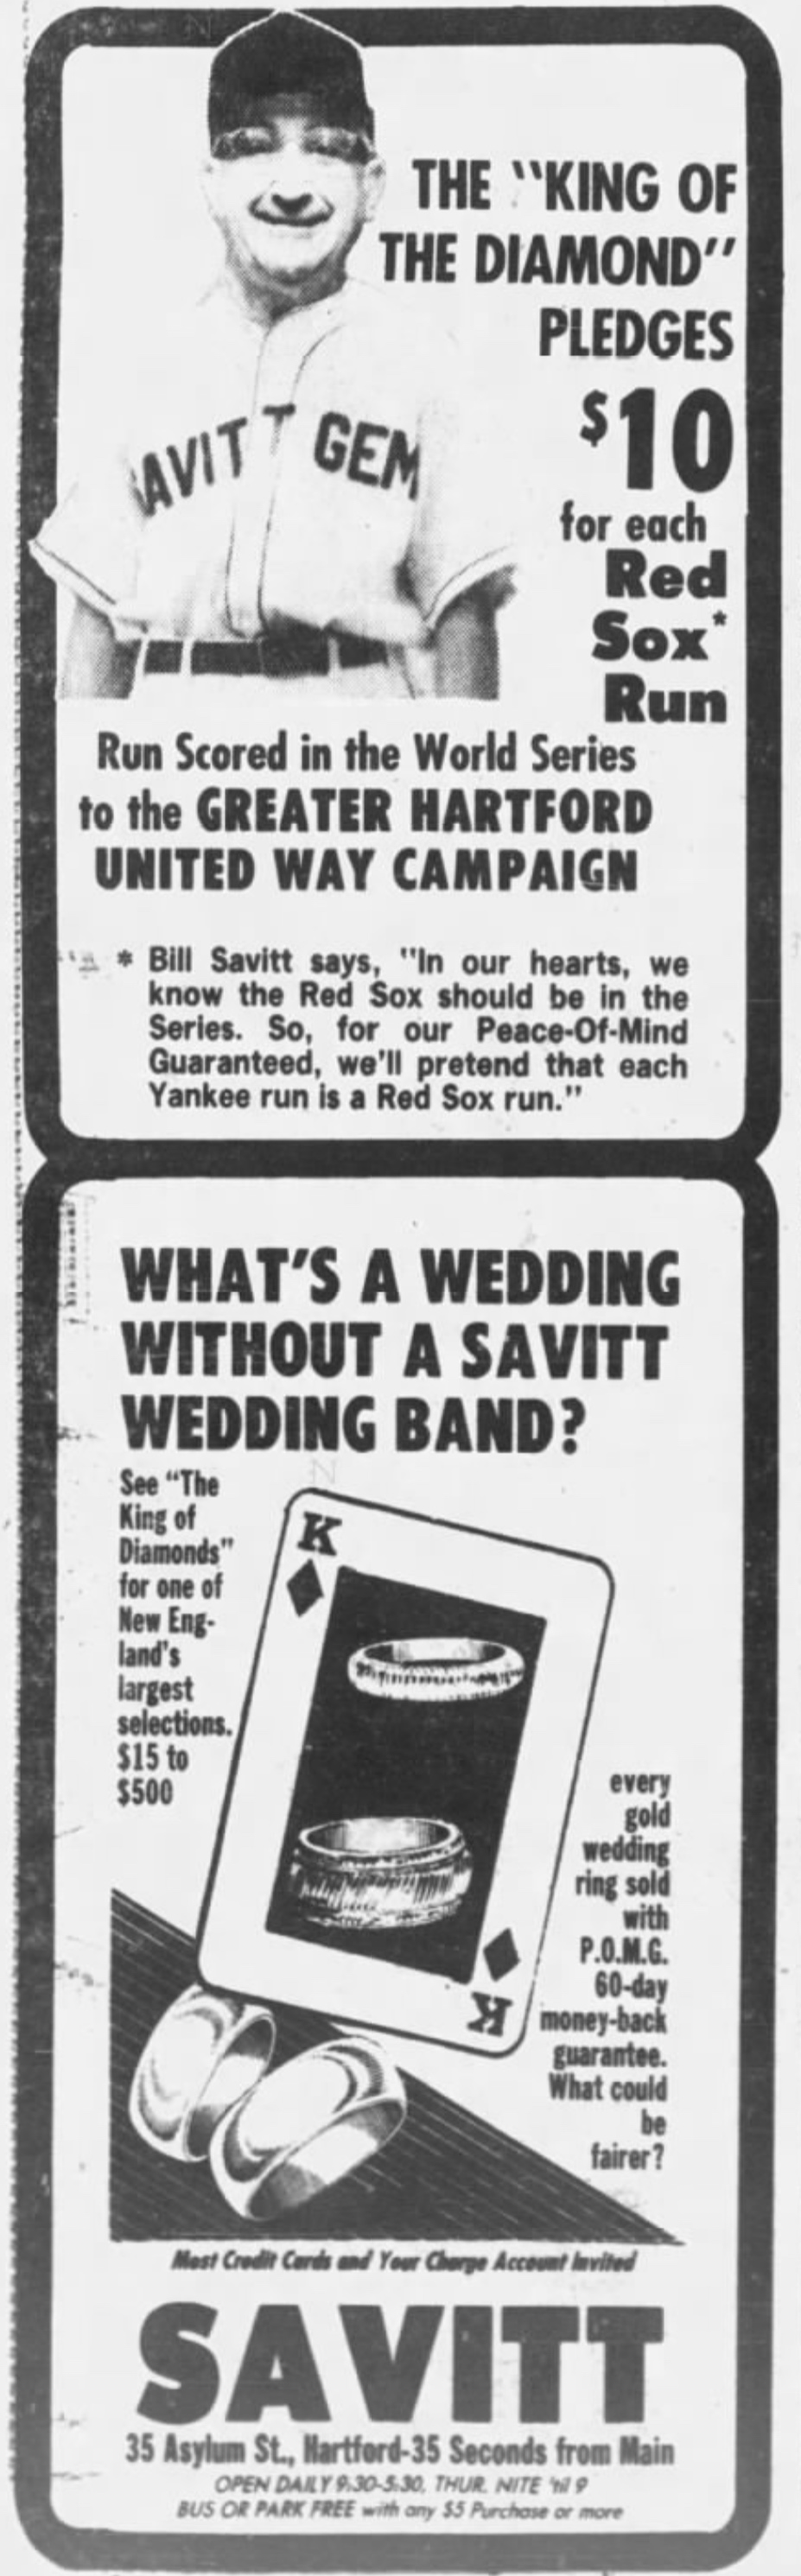 Savitt Jewelers advertisement, 1977.